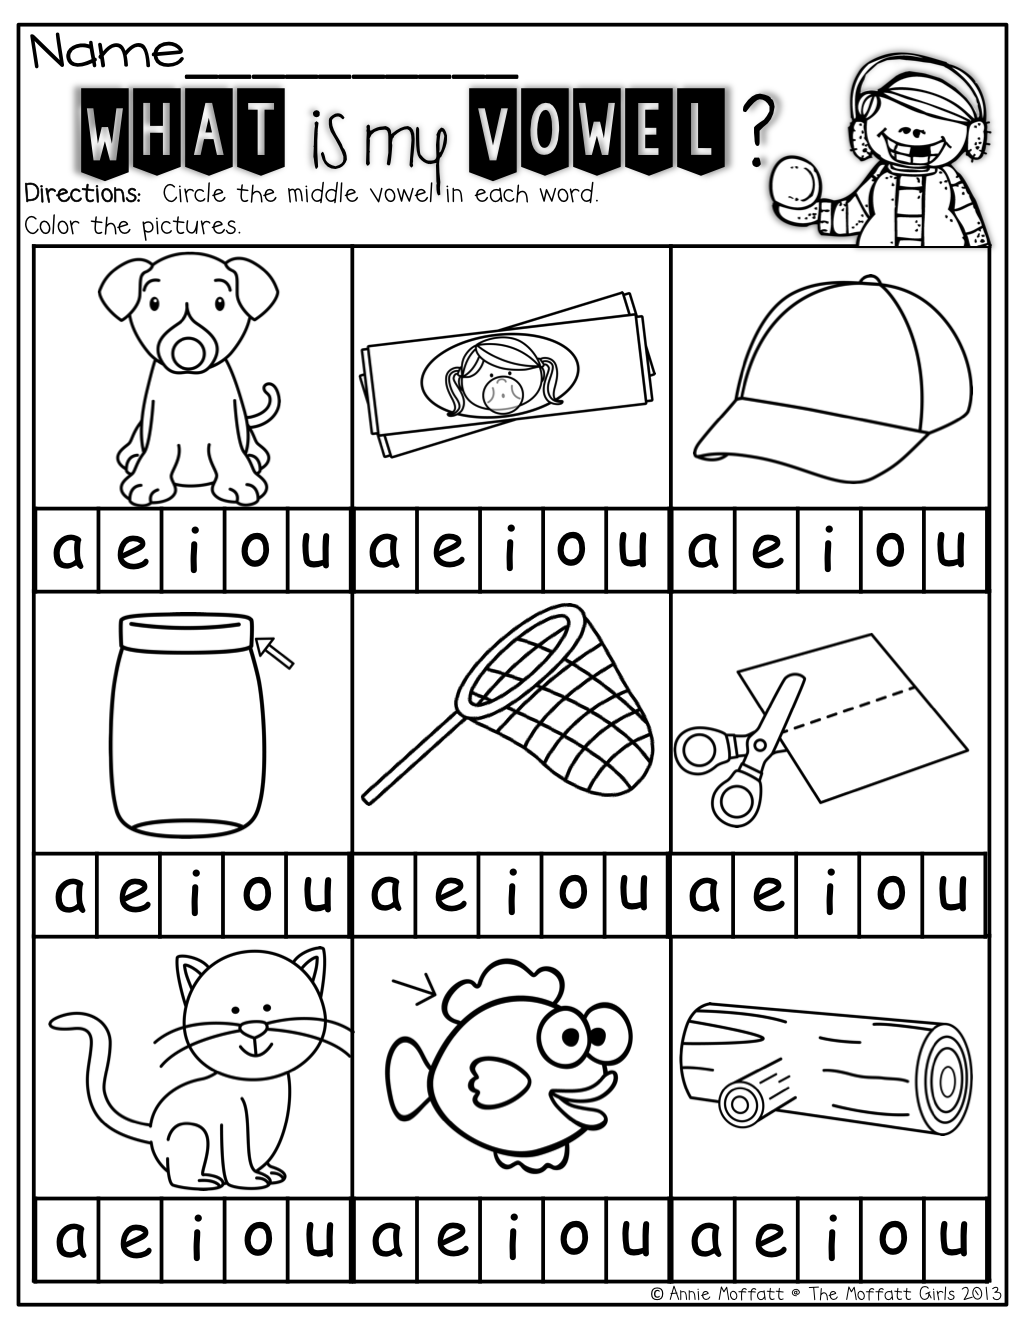 Middle Vowels A Great Way For Kids To Isolate Sounds And Help Them Find The Vowel In A C Phonics Kindergarten Kindergarten Reading Kindergarten Language Arts [ 1325 x 1024 Pixel ]